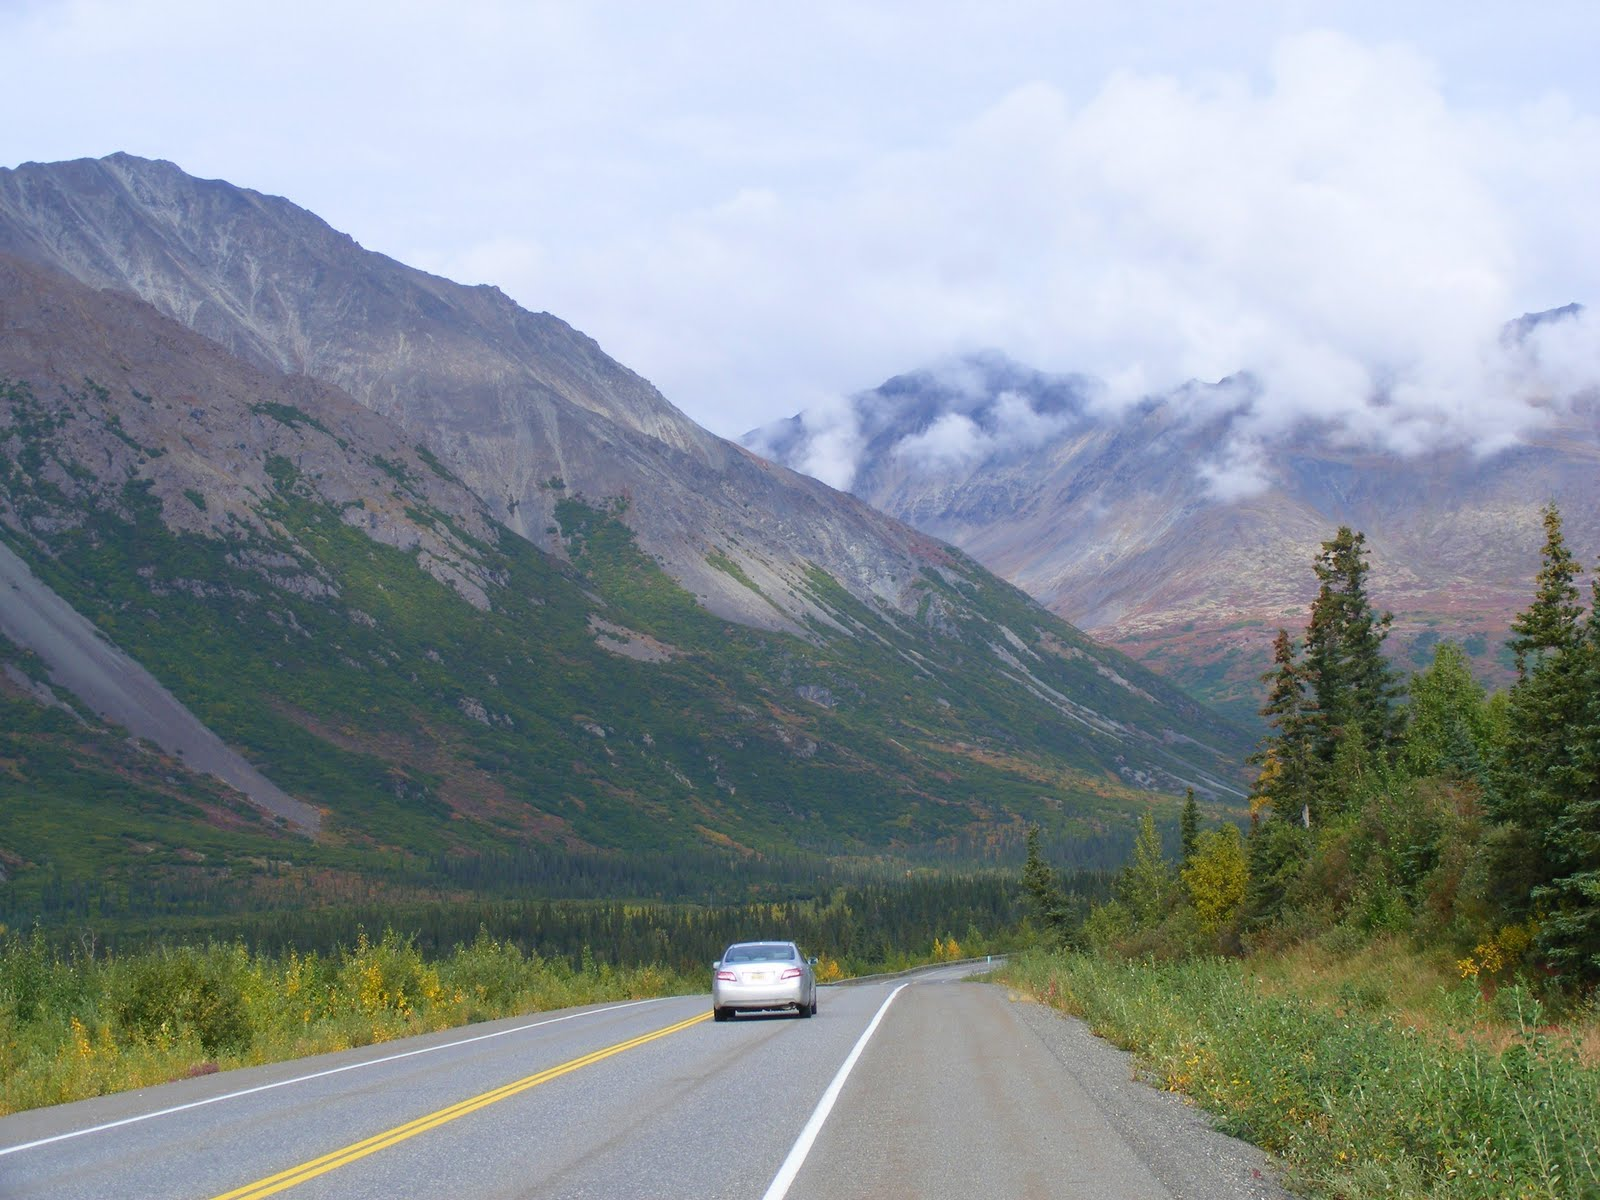 Less than an hour outside Fairbanks is the lush Tanana Valley State Forest, which surrounds George Parks Highway on both sides (Source: Justus Havelaar)